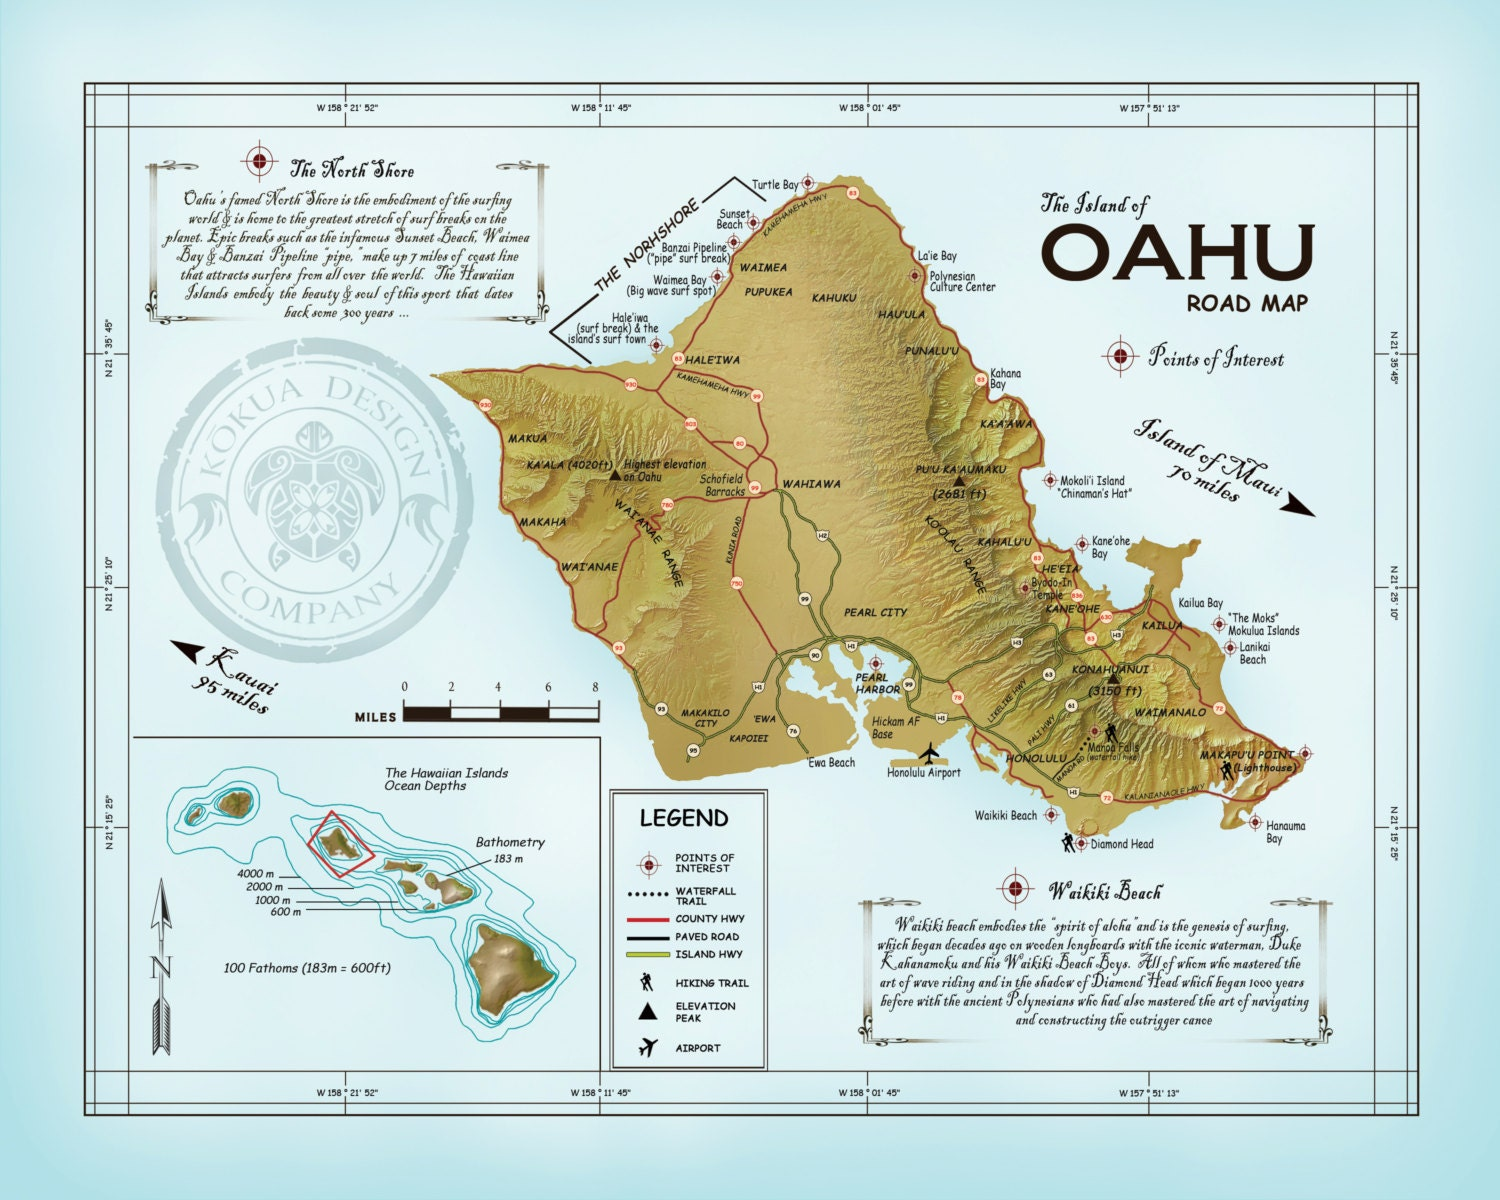 The Island Of Oahu Atlas Inspired 11 X 14 Road Map